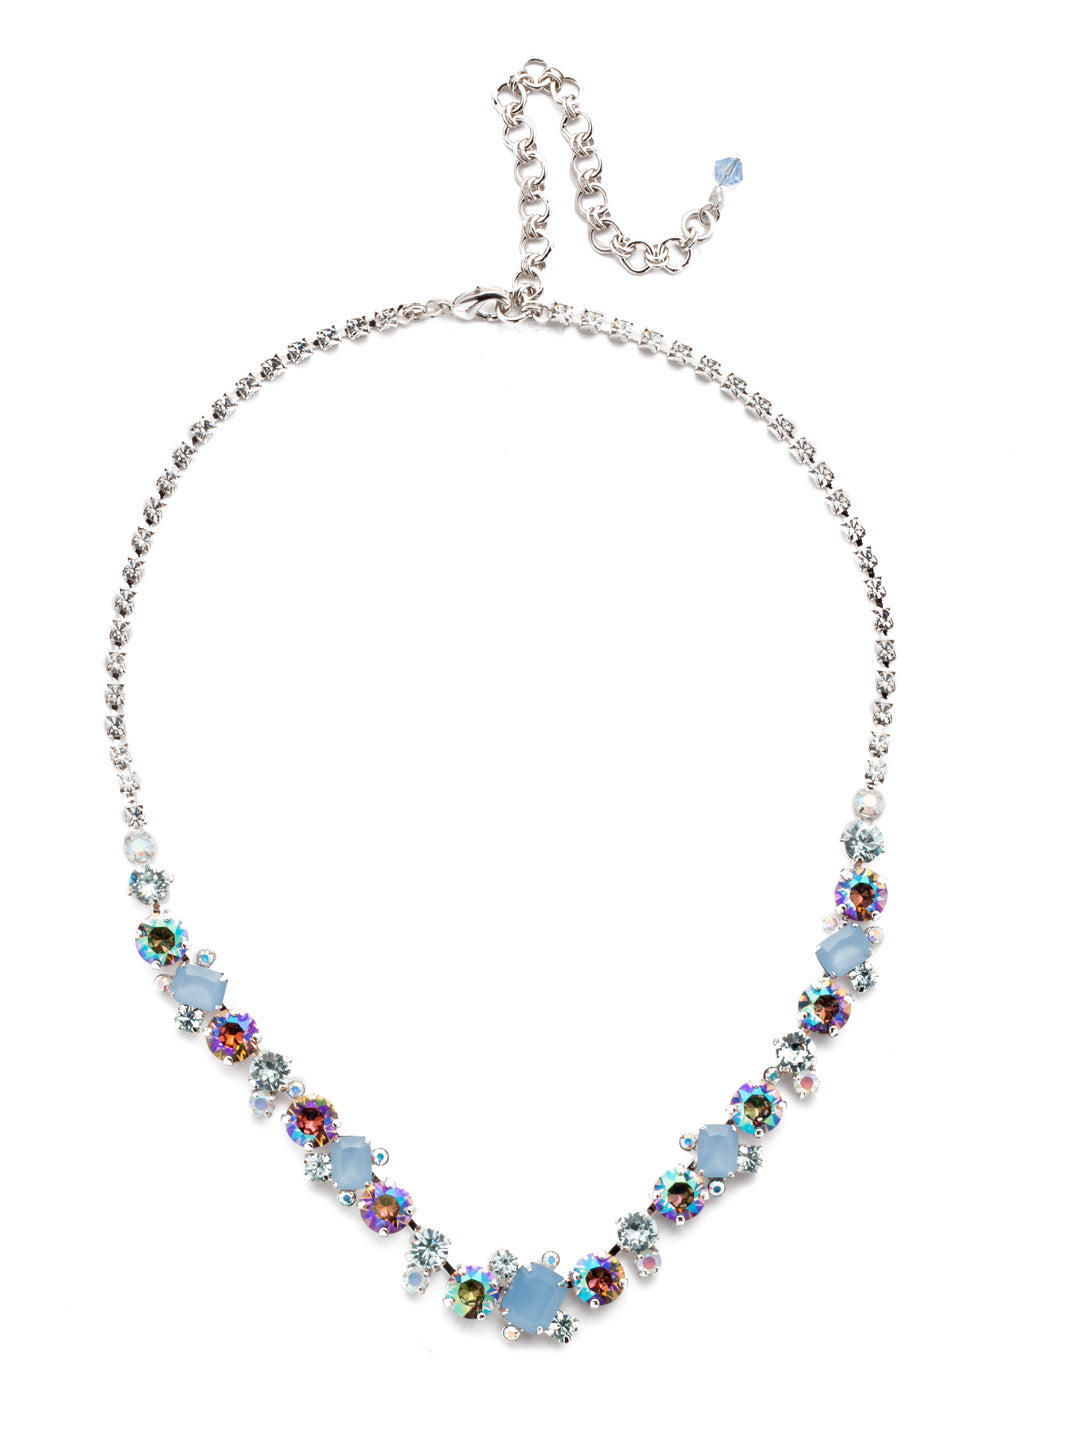 Sophisticated Tennis Necklace - NDK17RHNTB